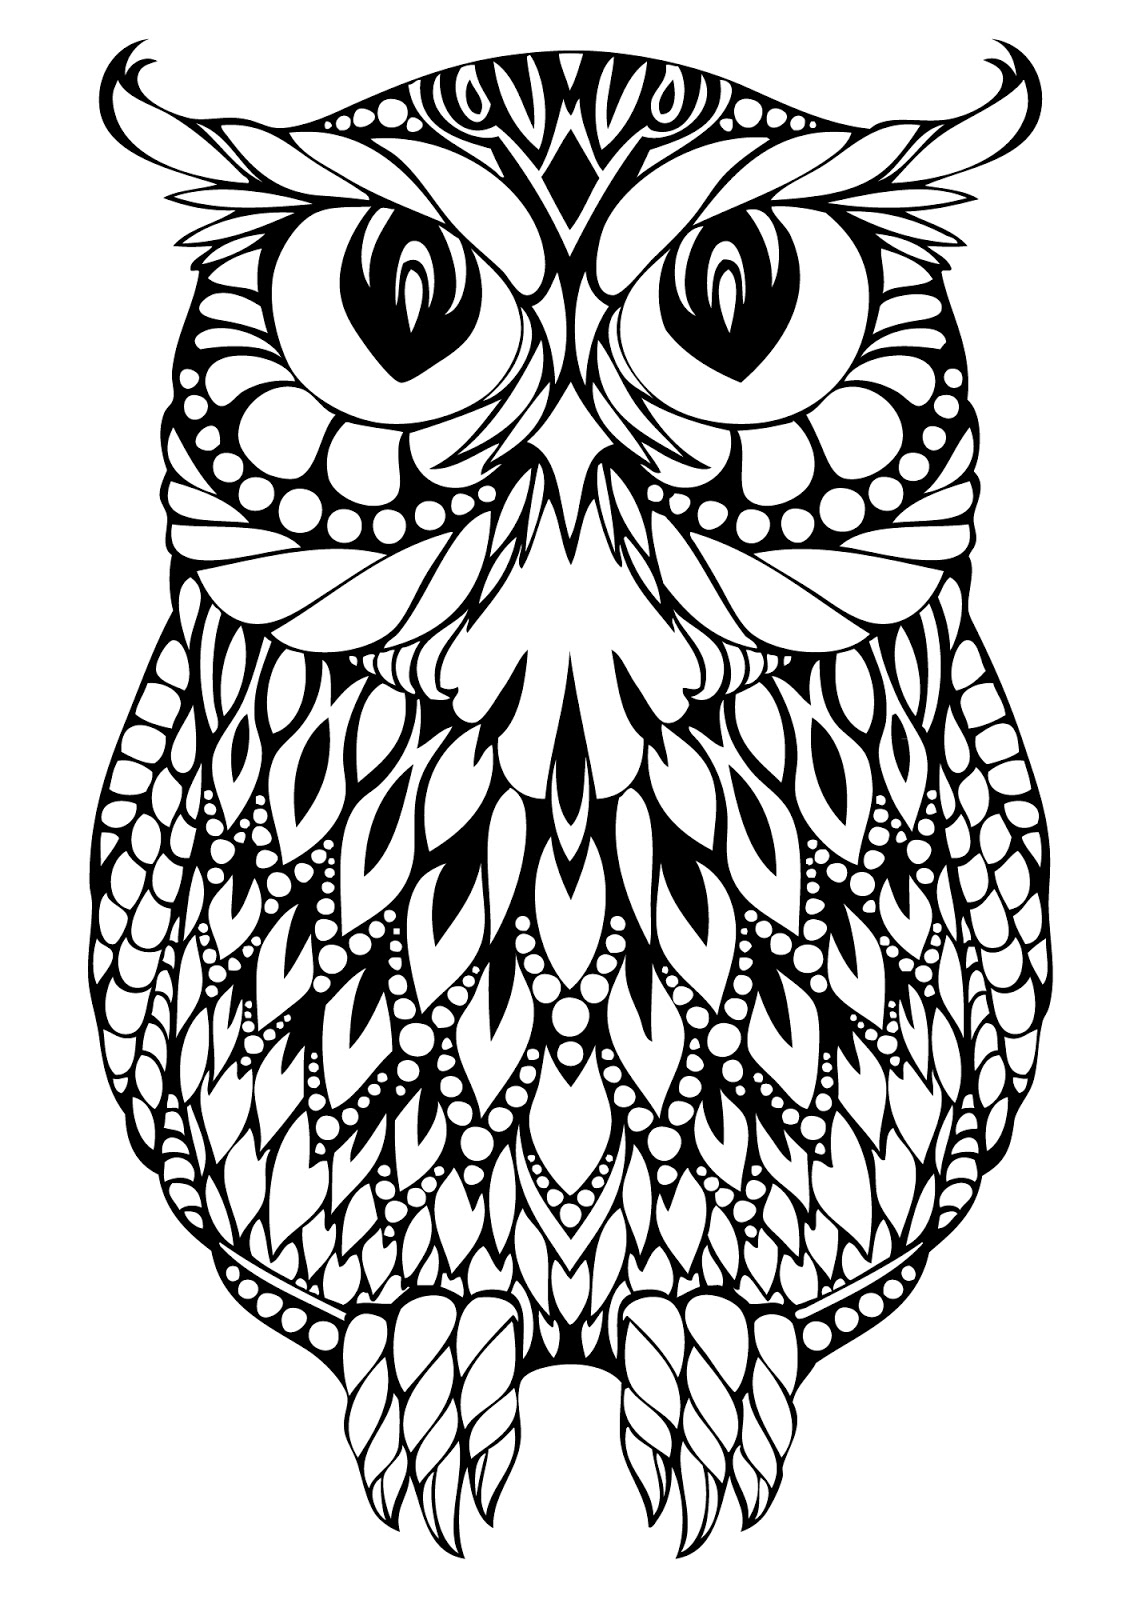 coloring pages for kids to print zebra coloring pages free printable kids coloring pages kids pages for to coloring print